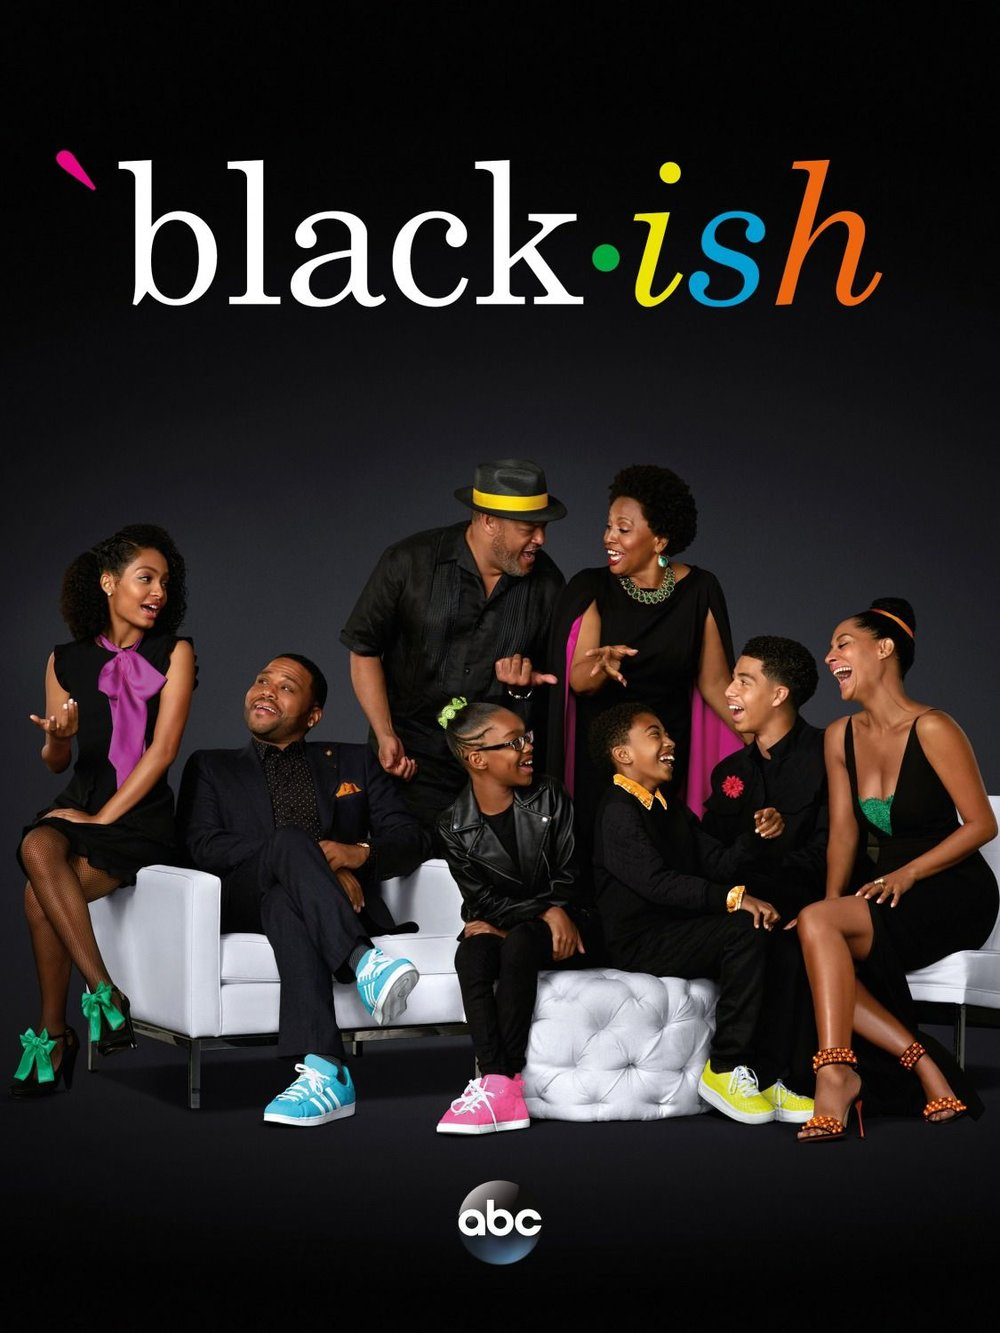 Black-ish  has been renewed for a fifth season…I really should watch it.